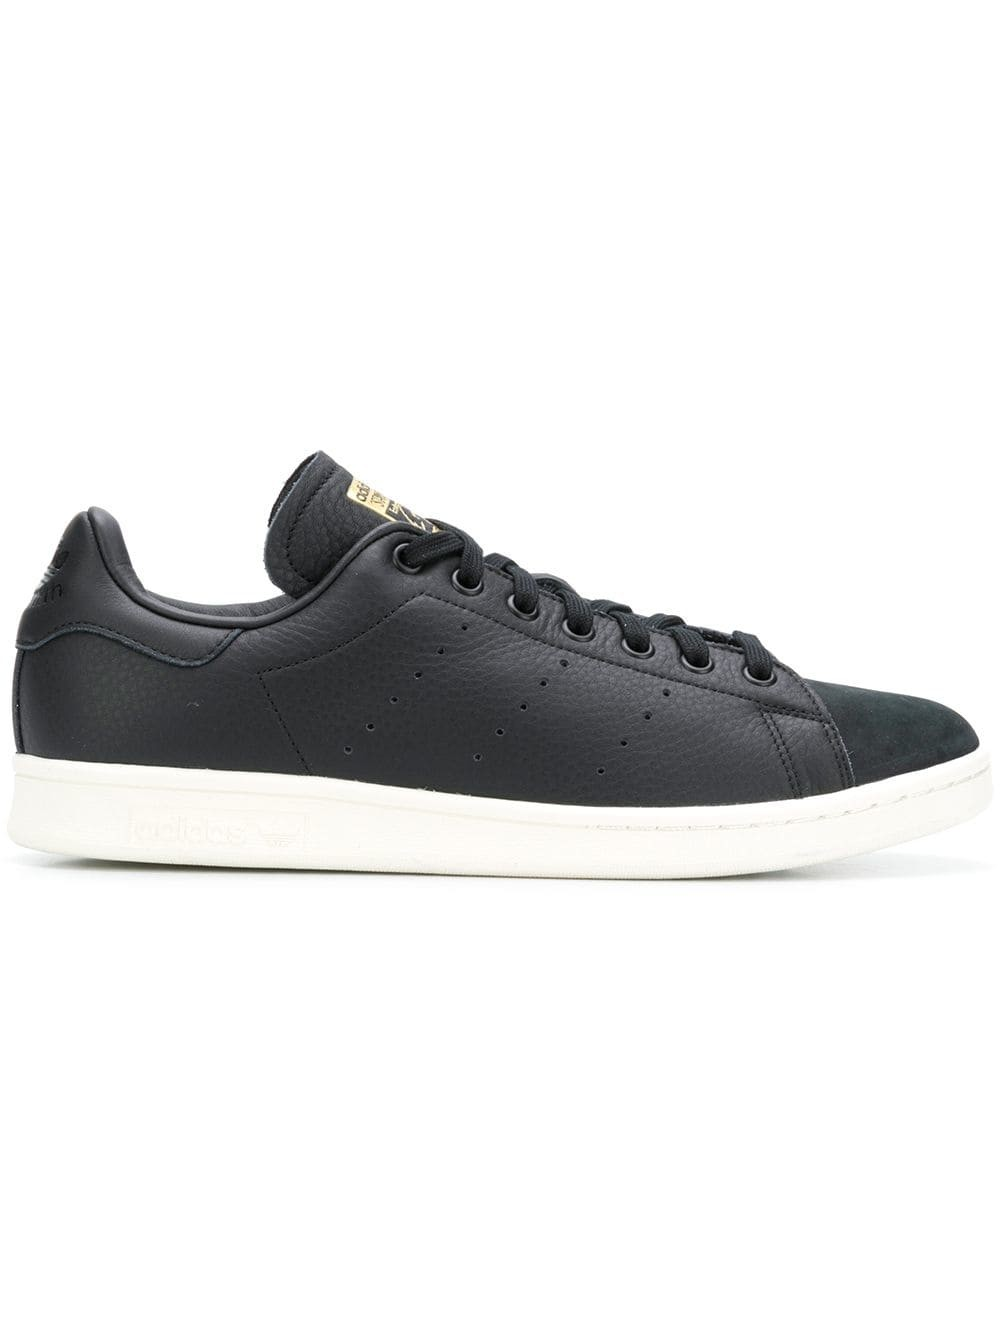 Adidas Stan Smith Premium Noir/Or B37901